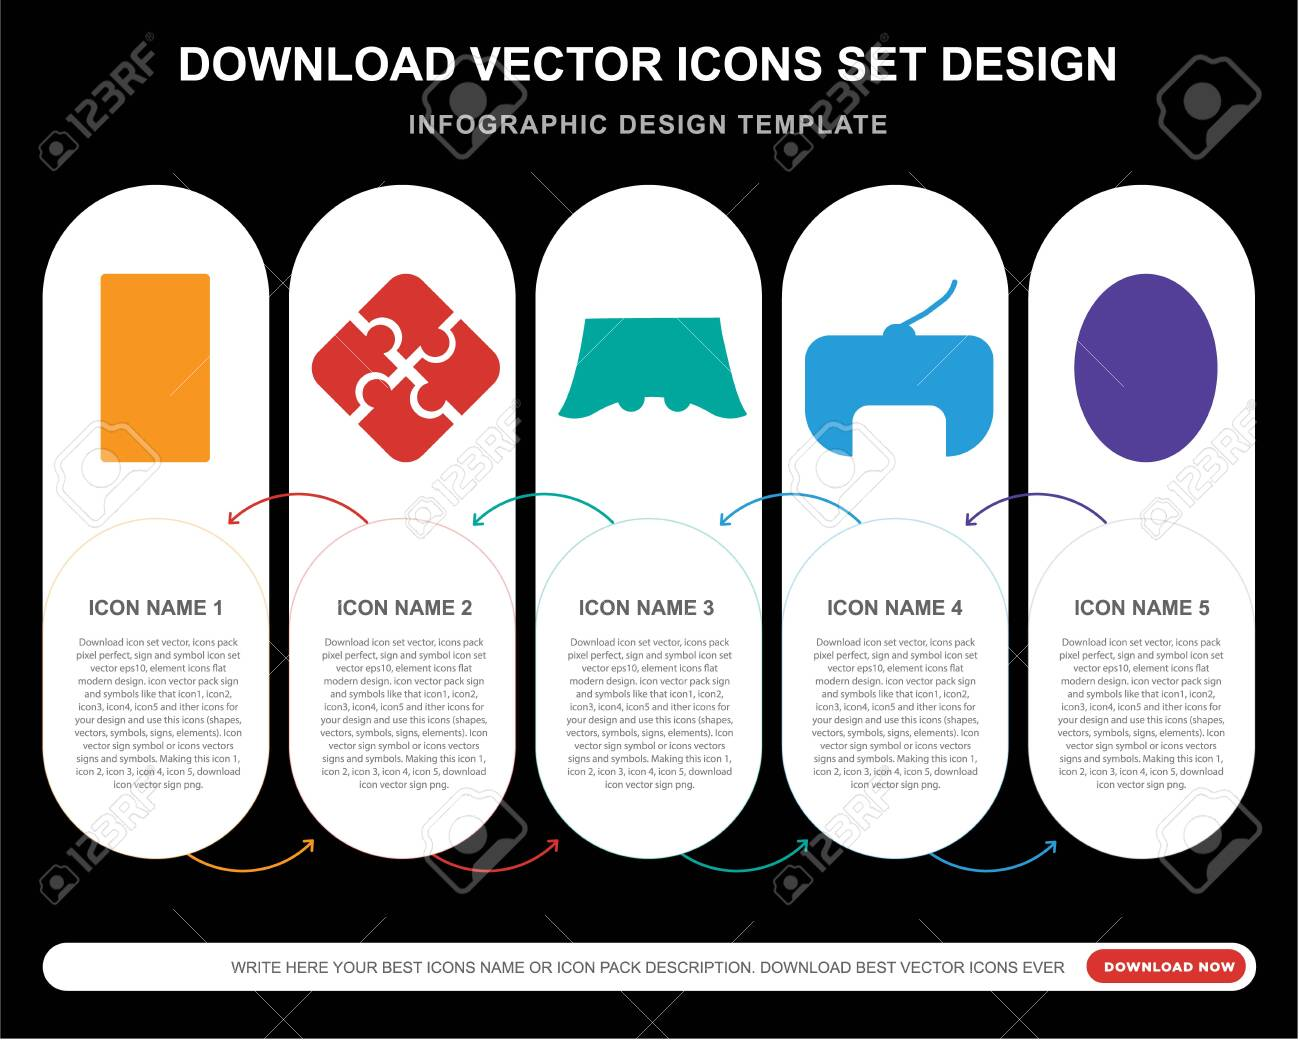 5 vector icons such as Jigsaw, Console, Gamepad, Football pitch for infographic, layout, annual report, pixel perfect icon - 130332548